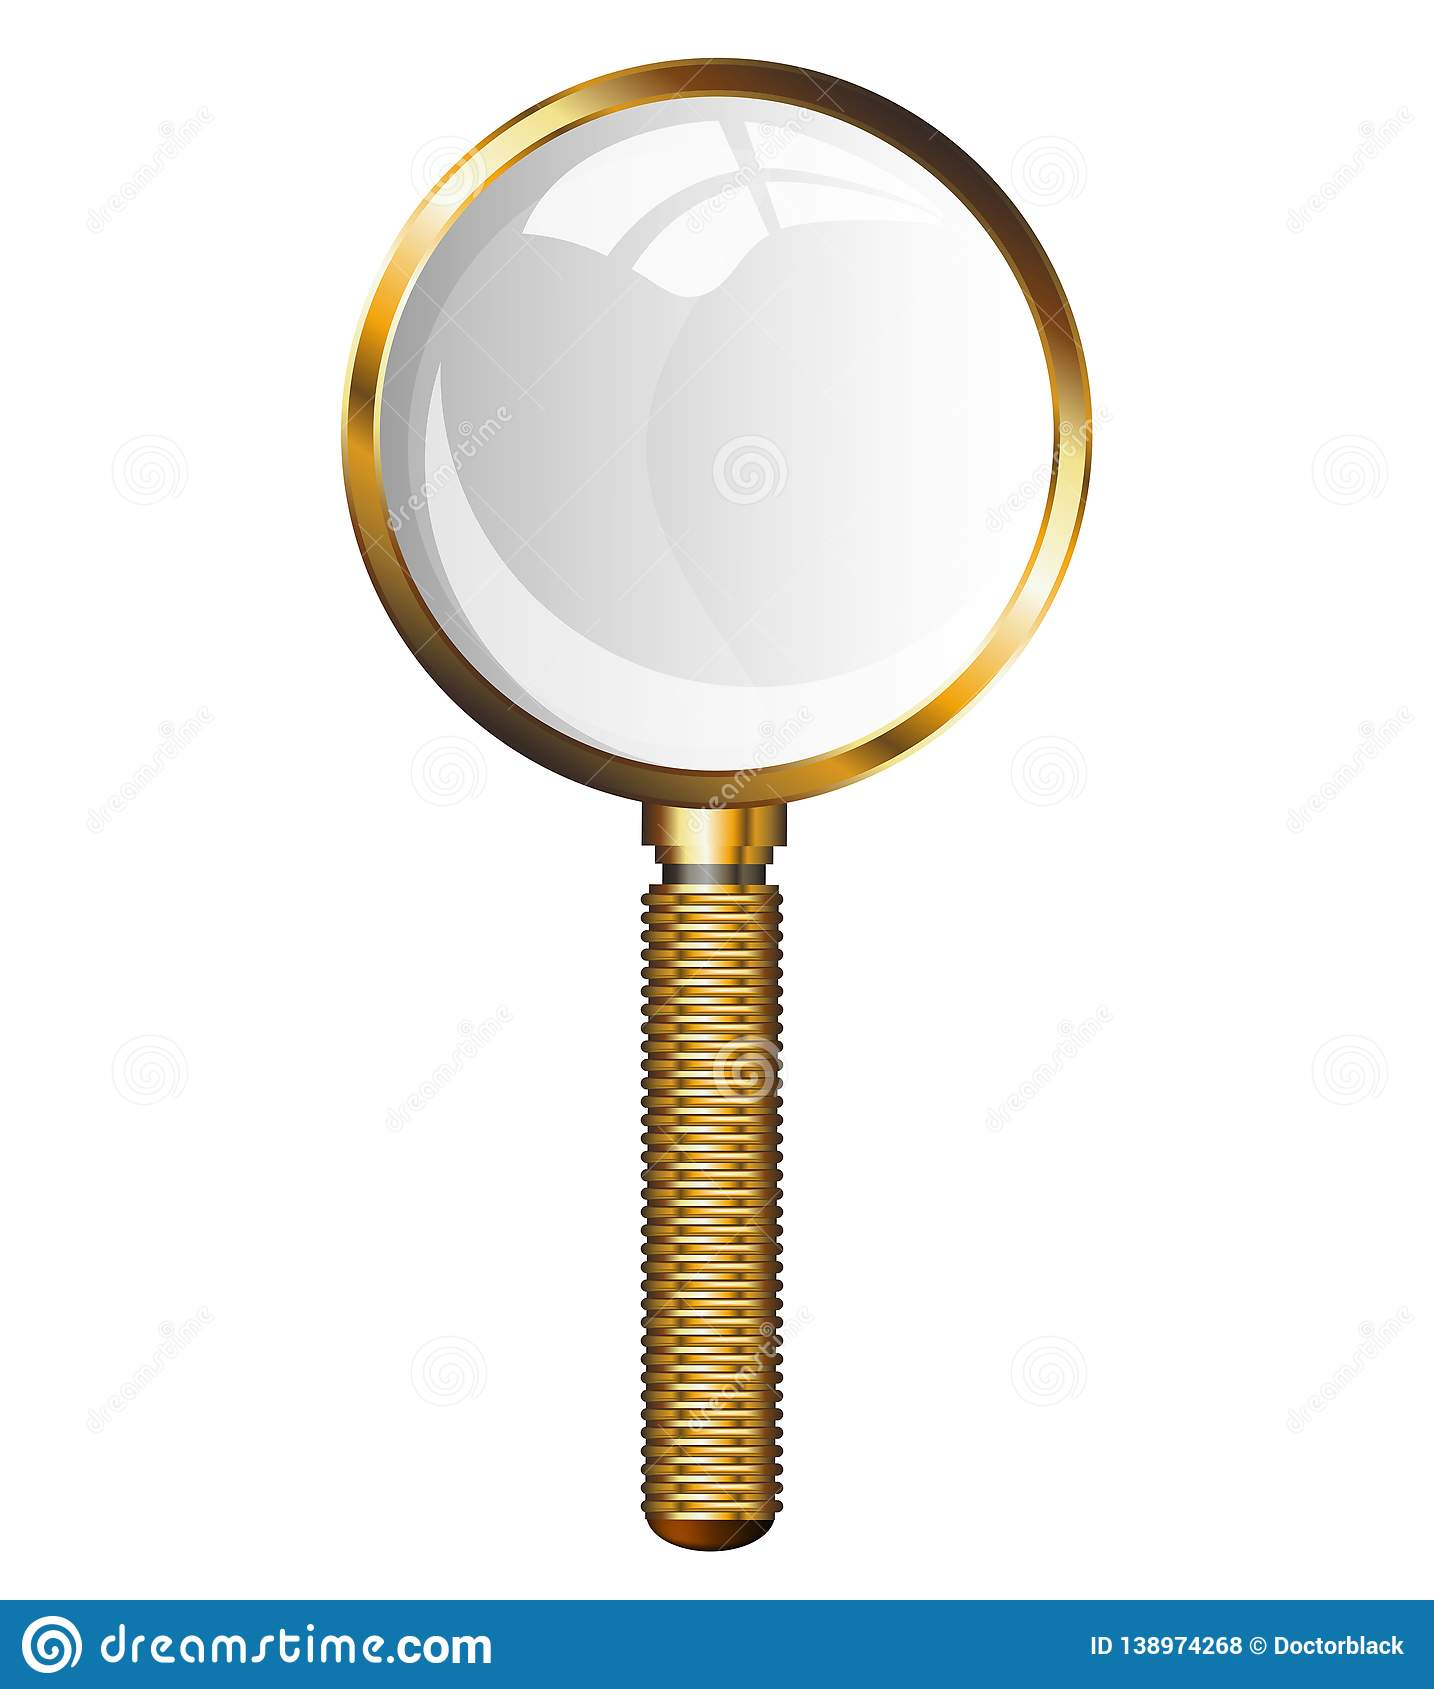 Golden Magnifying Glass. Transparent loupe on a white background. Isolated illustration